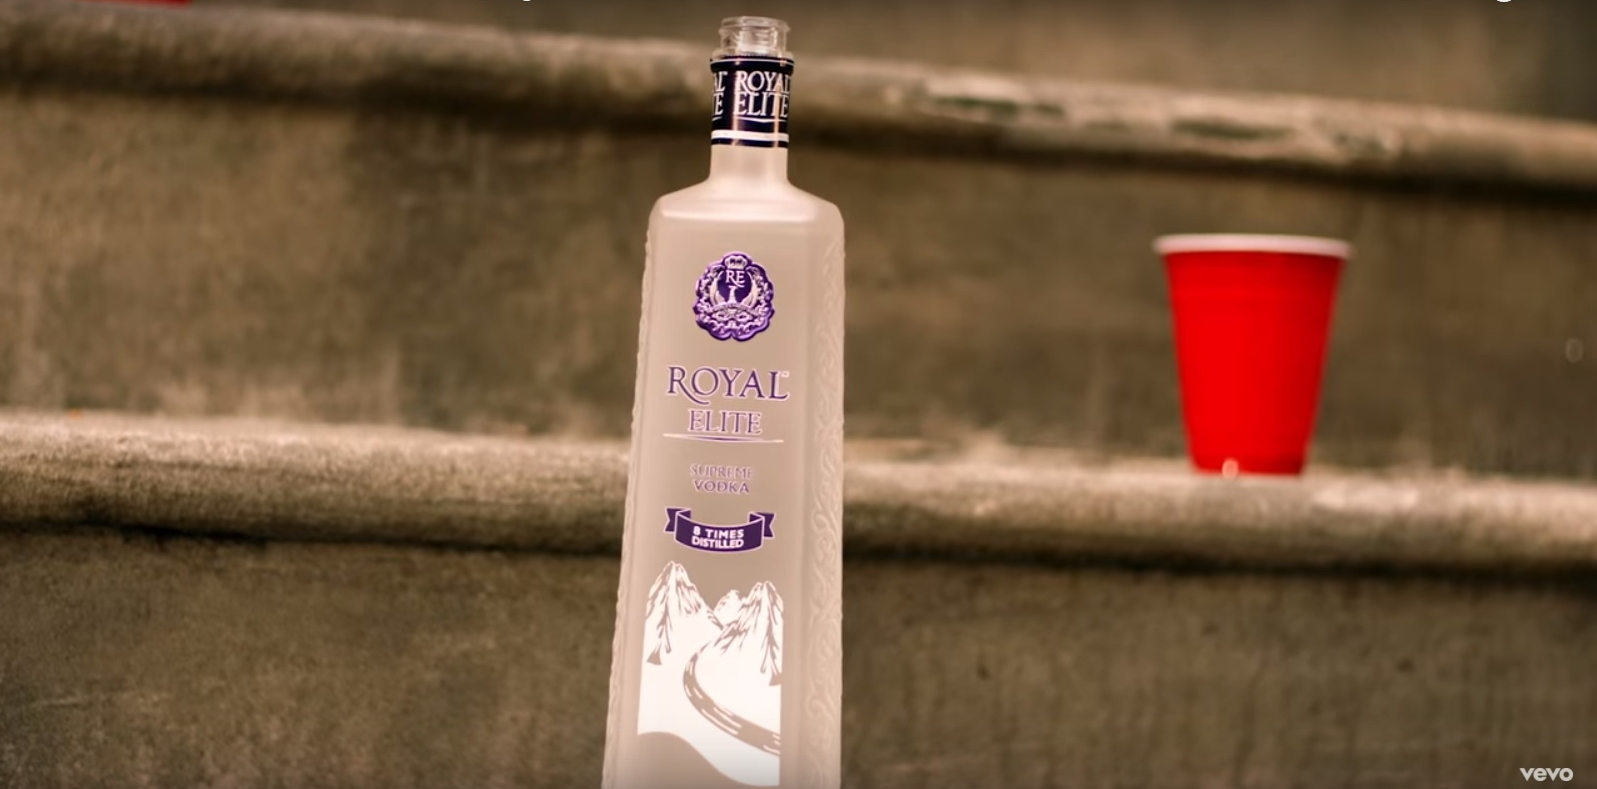 Royal Elite Vodka - Jeremih - I Think Of You Official Music Video Product Placement